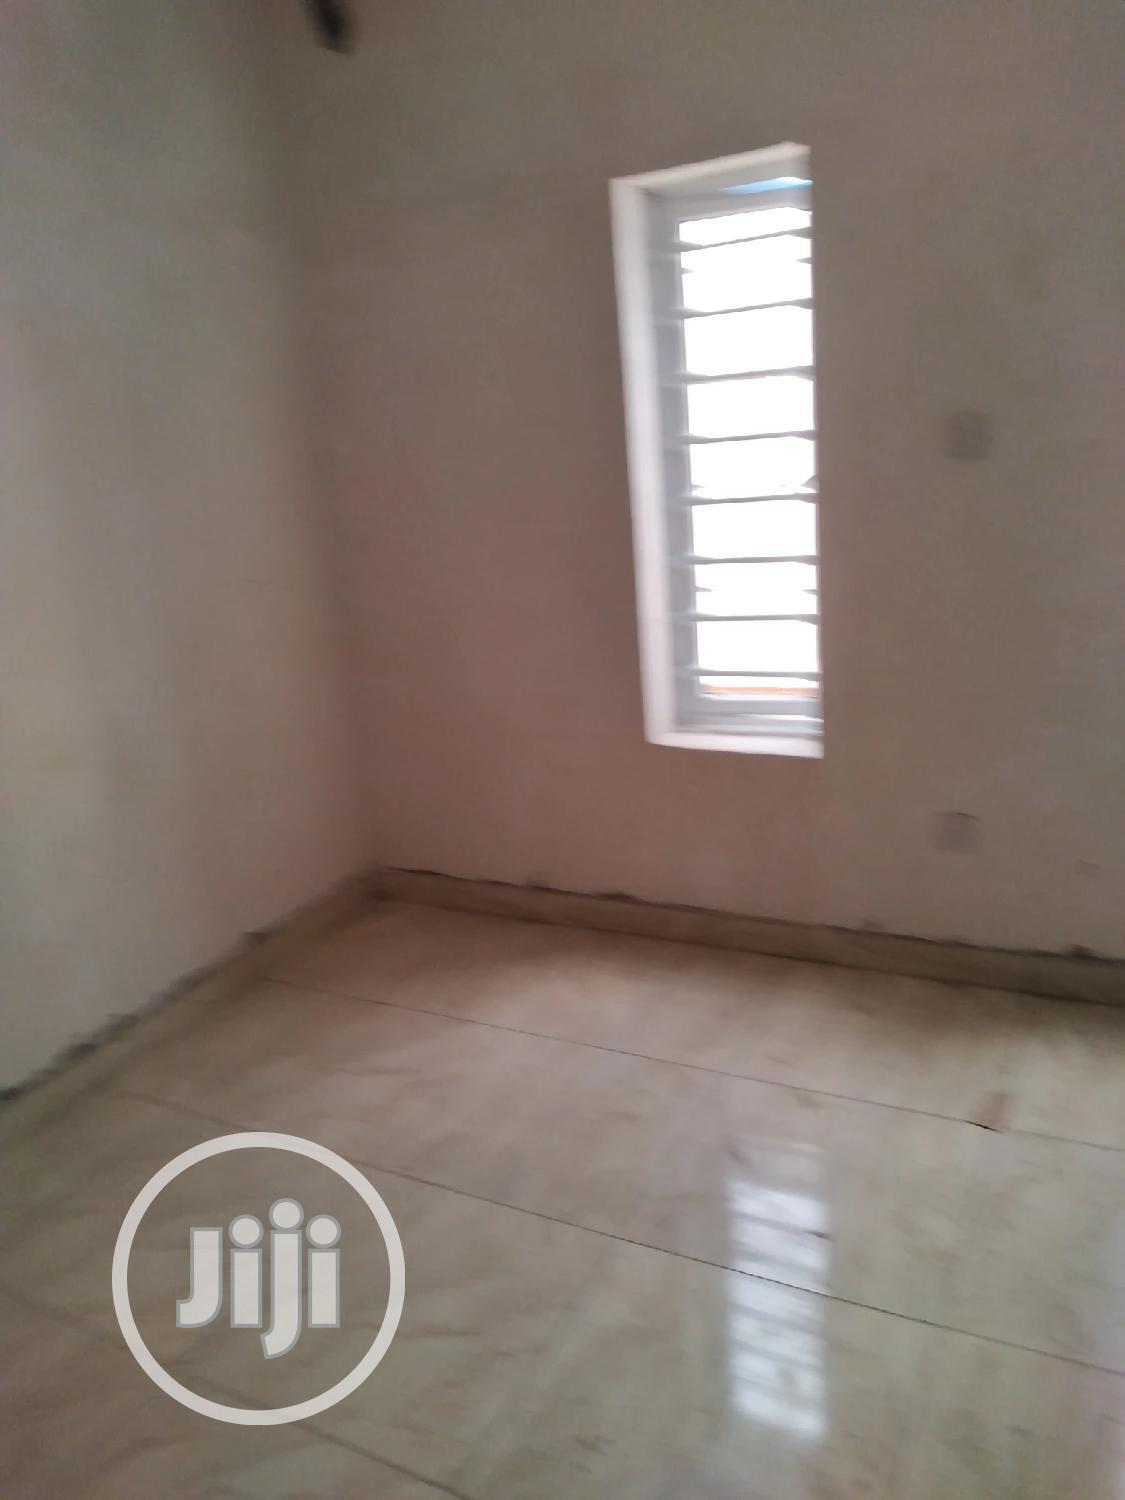 4 Bedroom Duplex With A Penthouse | Houses & Apartments For Sale for sale in Lekki, Lagos State, Nigeria